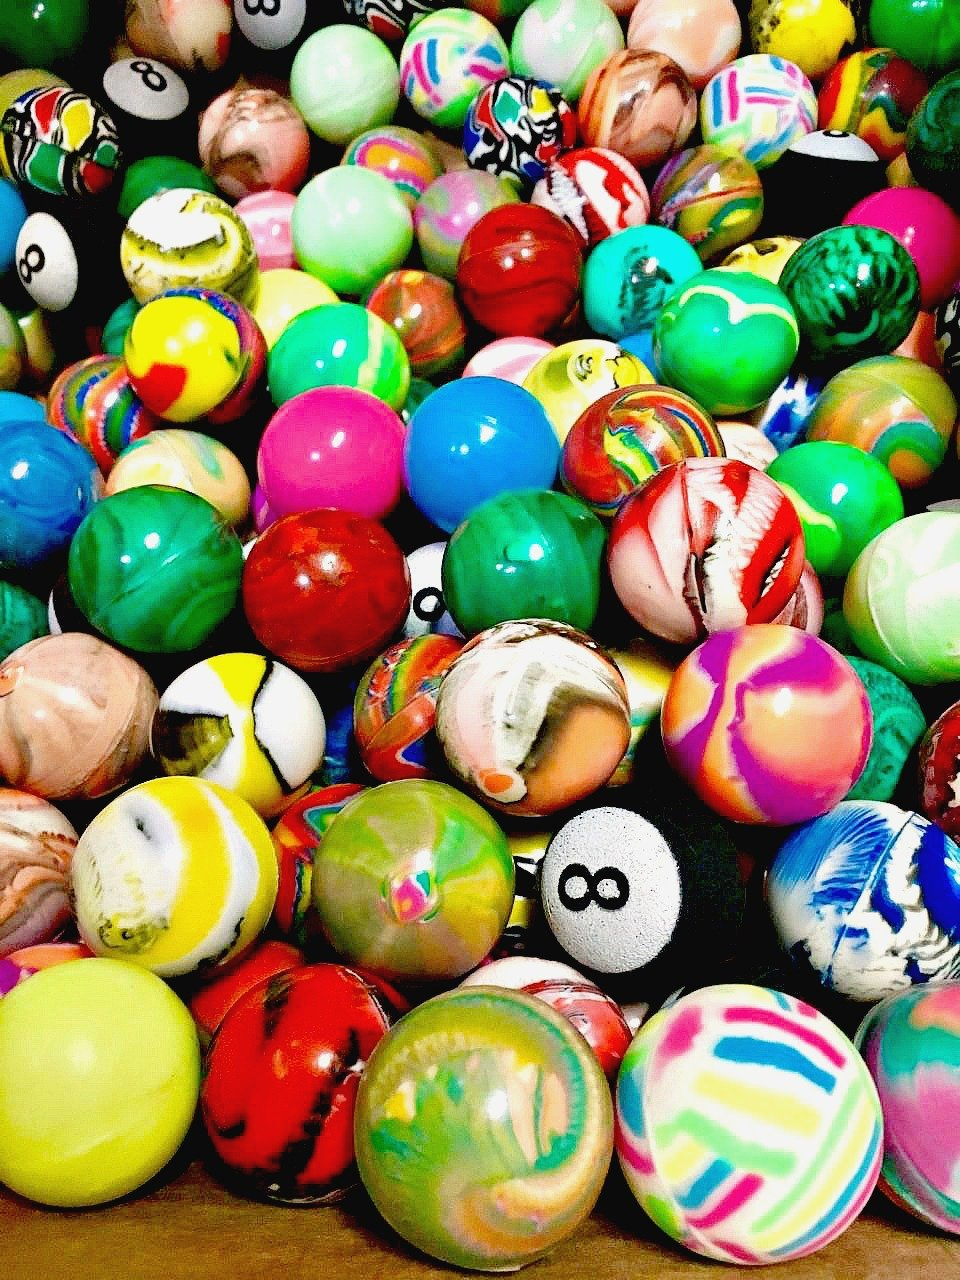 PREMIUM Bouncy Balls 27 MM (1000 count) by BOUNCY BALLS VENDING SUPPLY (Image #1)